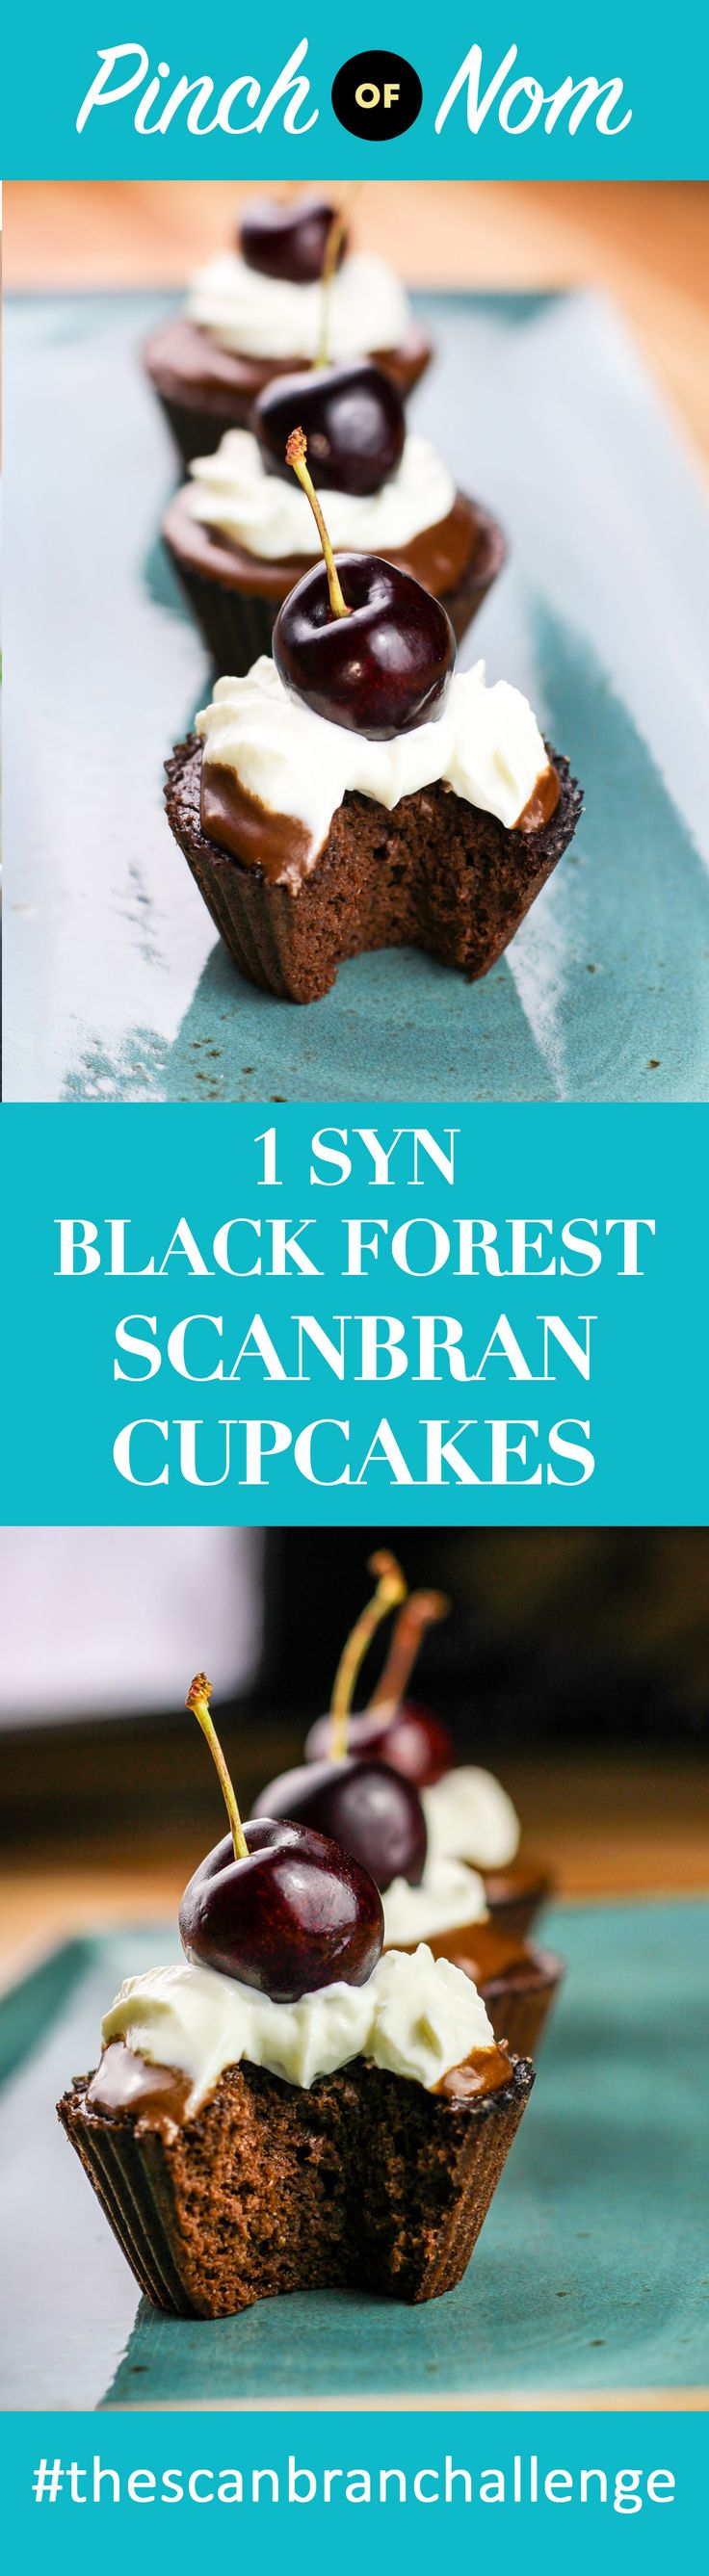 1 Syn Black Forest Scan Bran Cupcakes | Slimming World - http://pinchofnom.com/recipes/1-syn-black-forest-scan-bran-cupcakes-slimming-world/